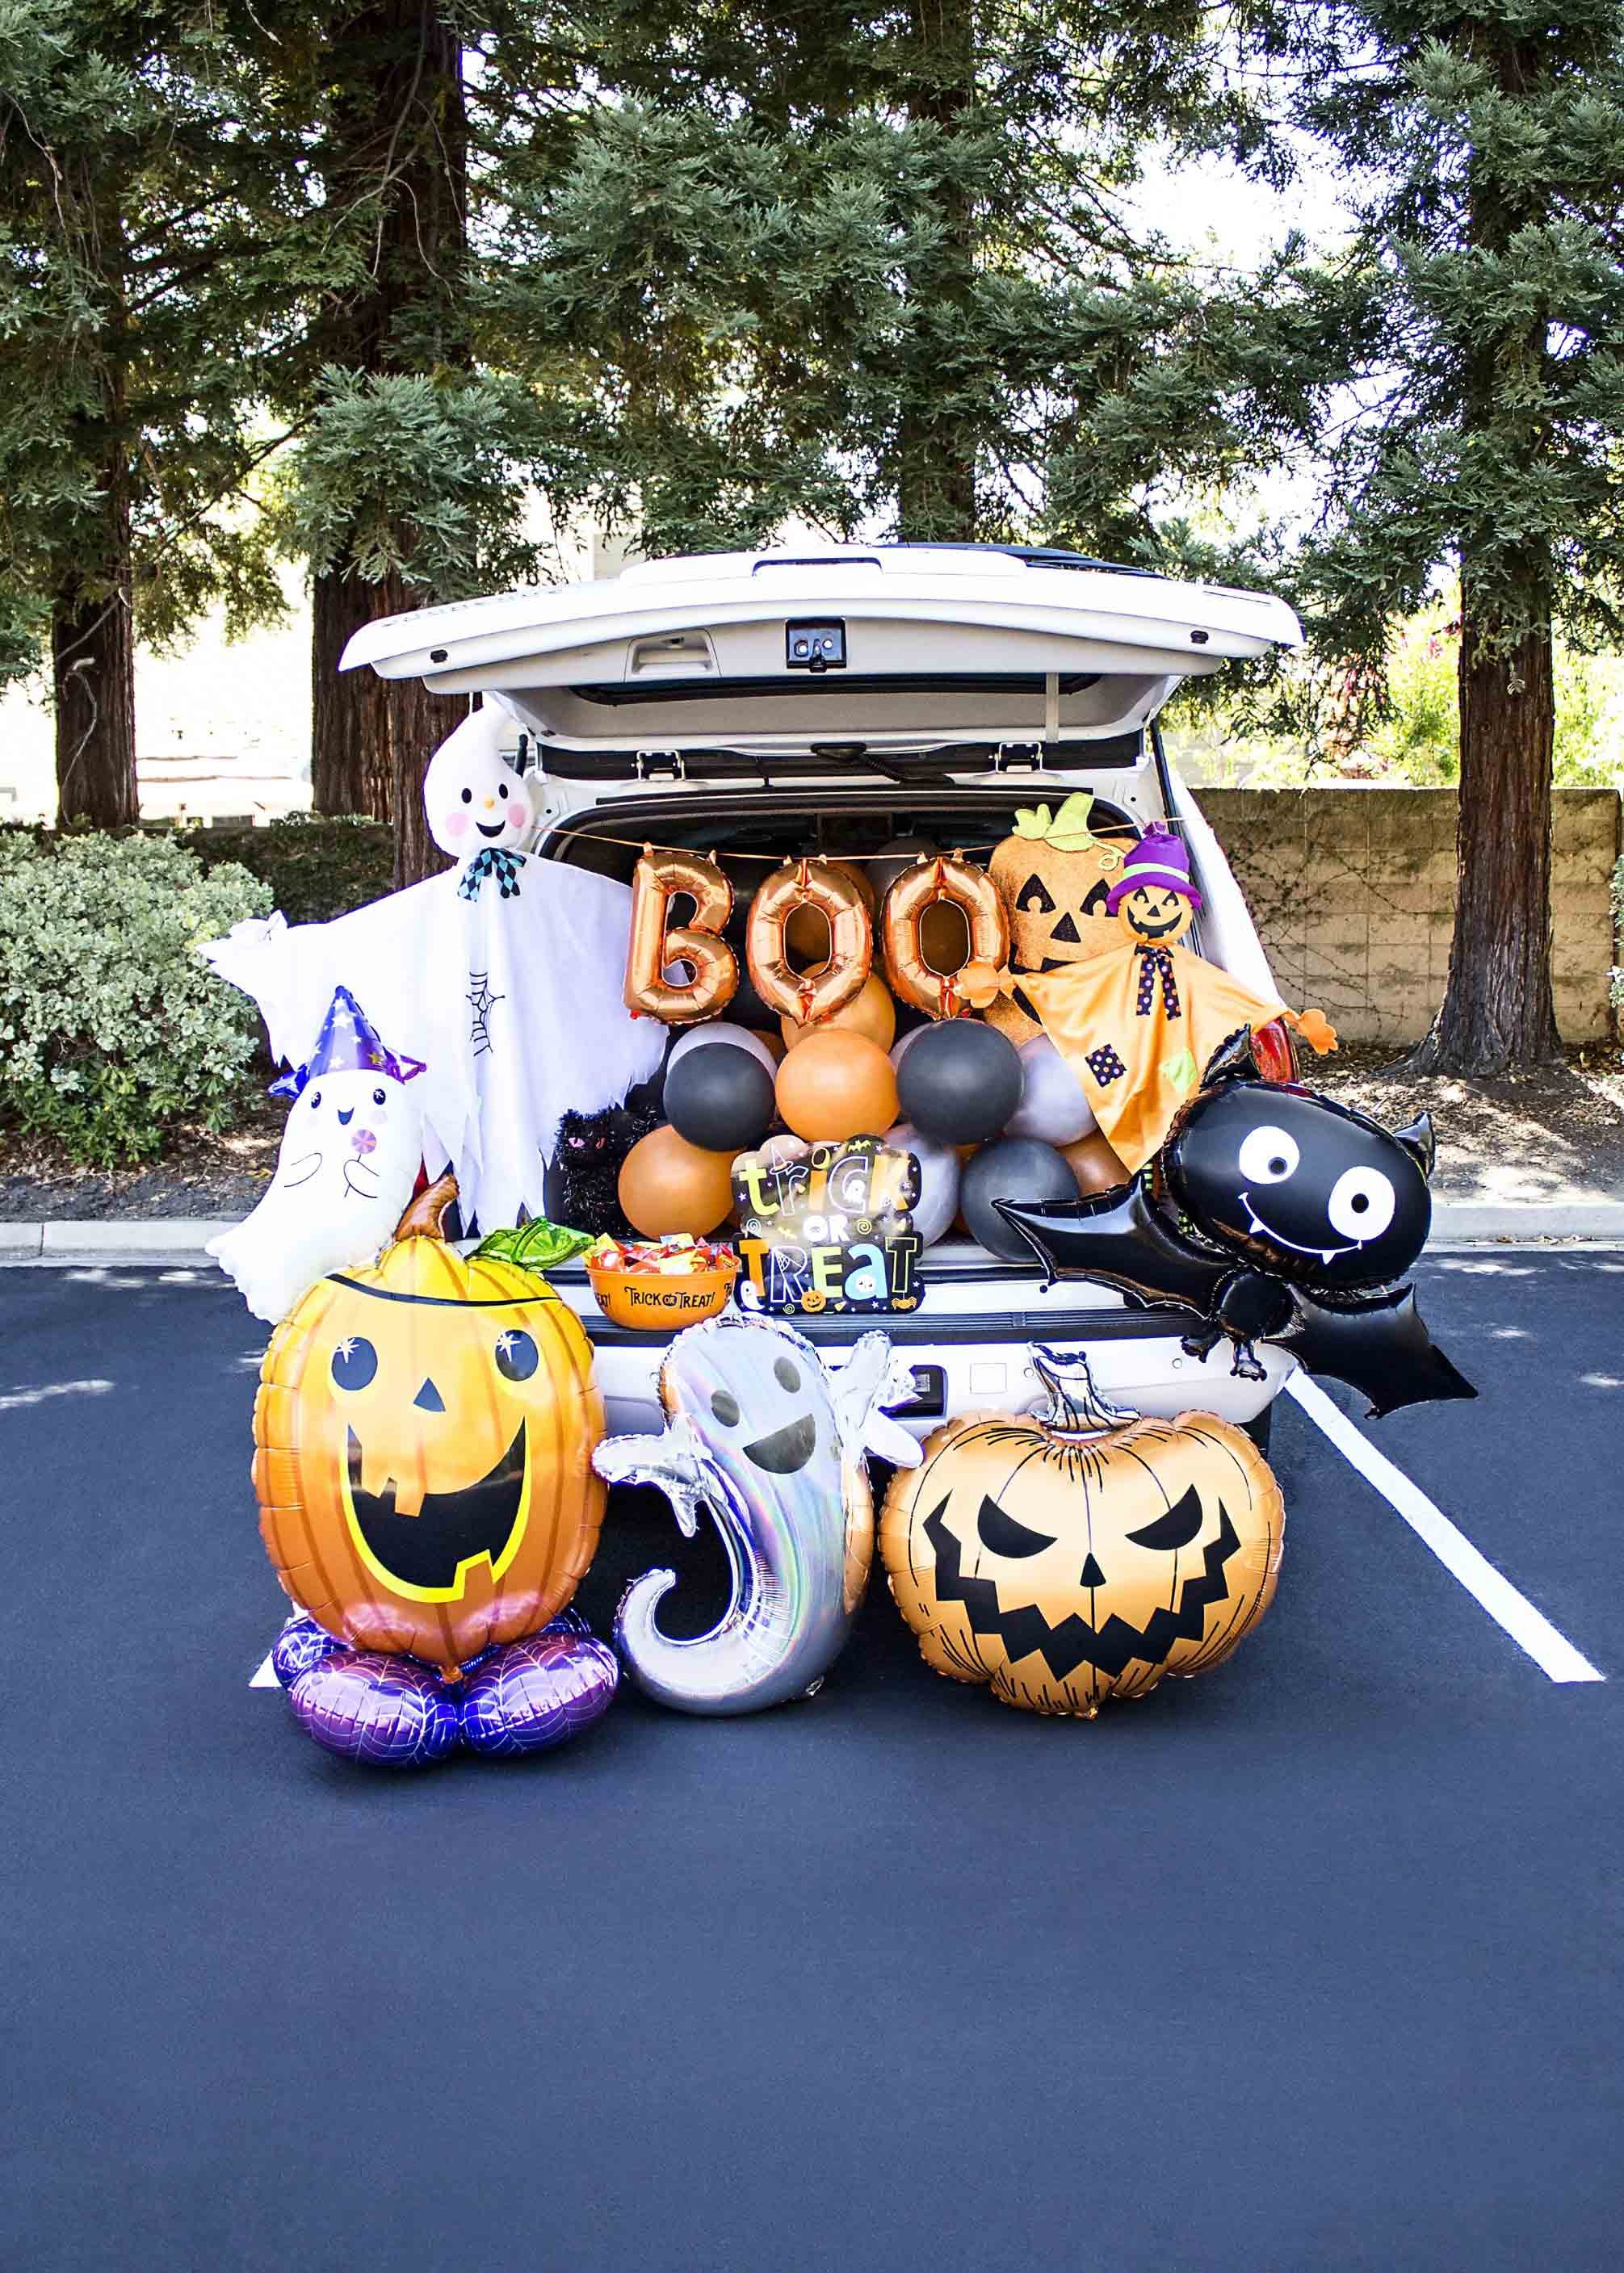 Halloween Trunk Or Treat Near Me 2020 Party City Halloween Trunk or Treat Car Decor Ideas 2020